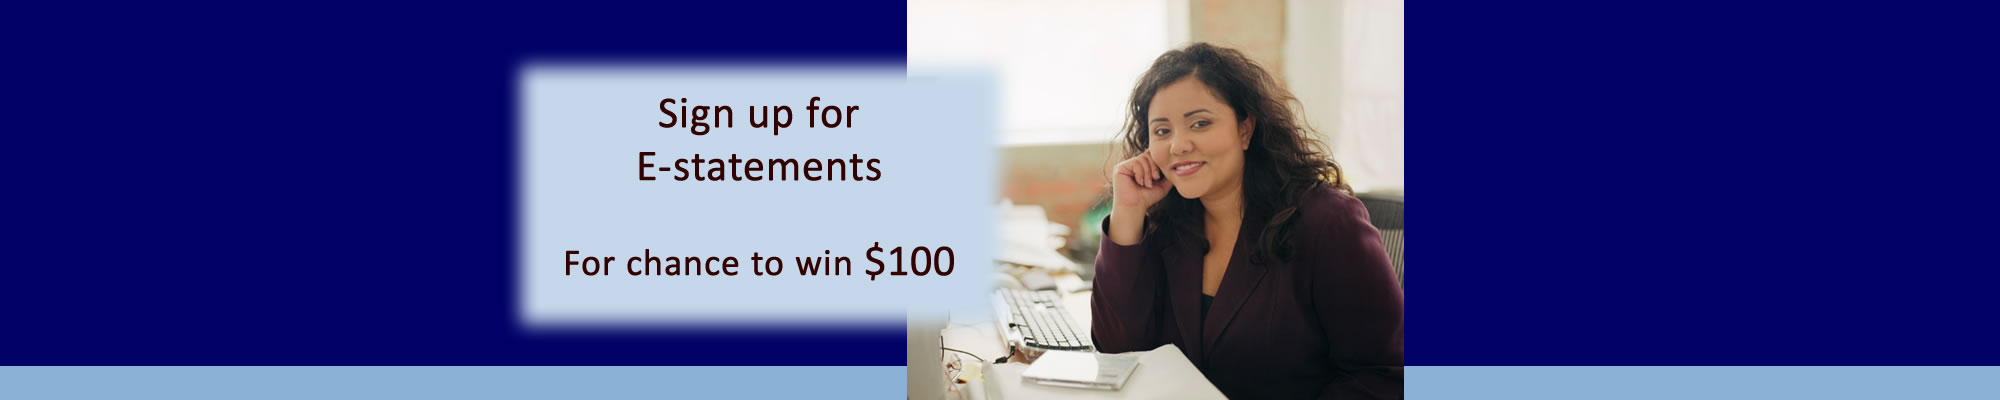 E-statement contest